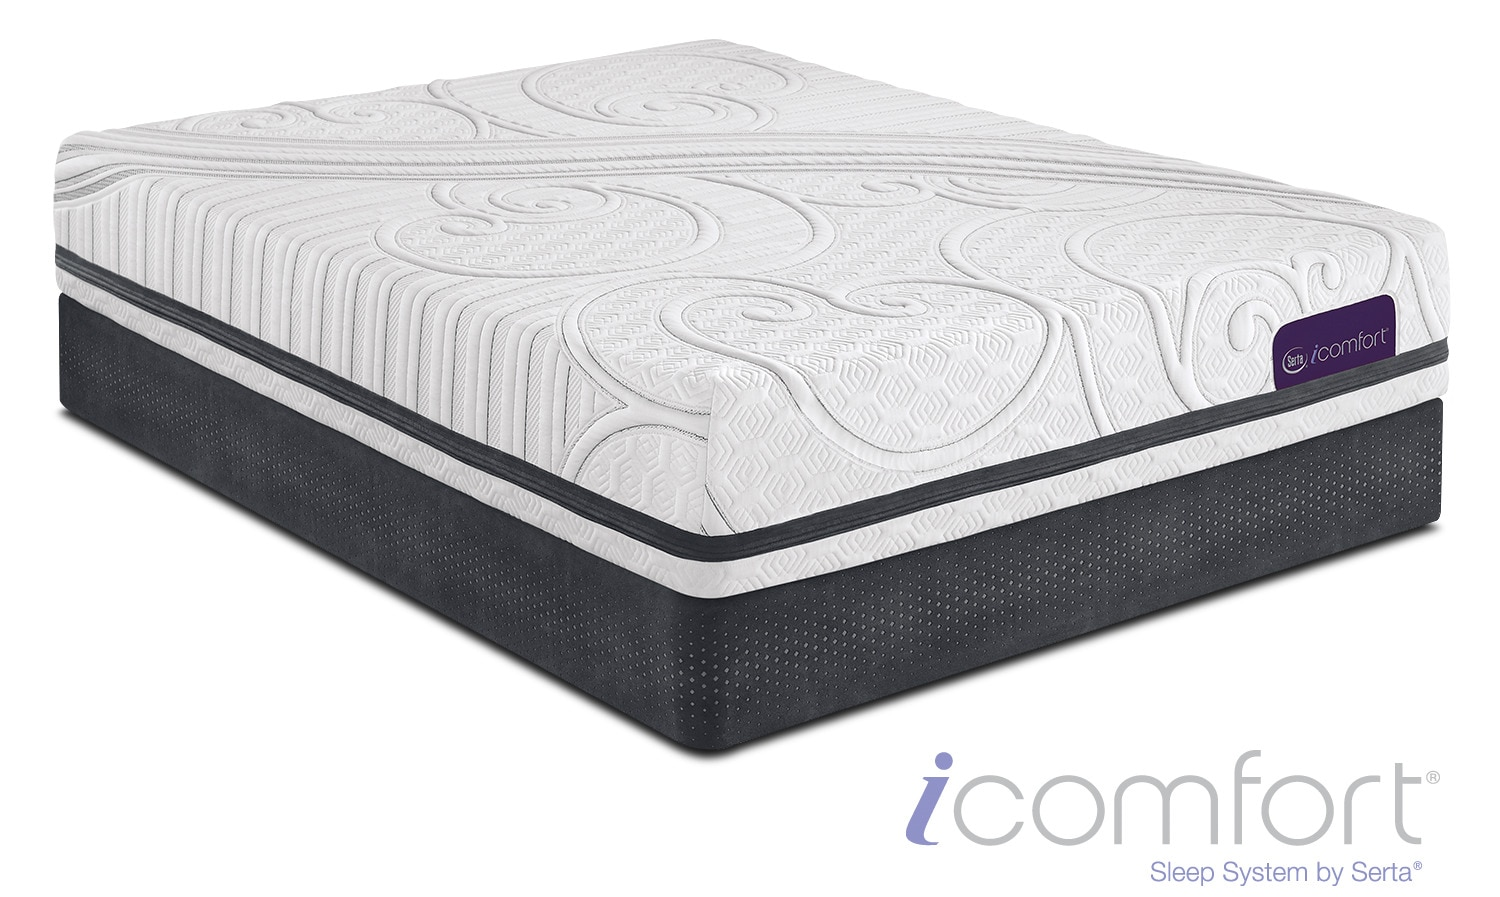 Mattresses and Bedding - Savant III Plush Queen Mattress and Low-Profile Foundation Set